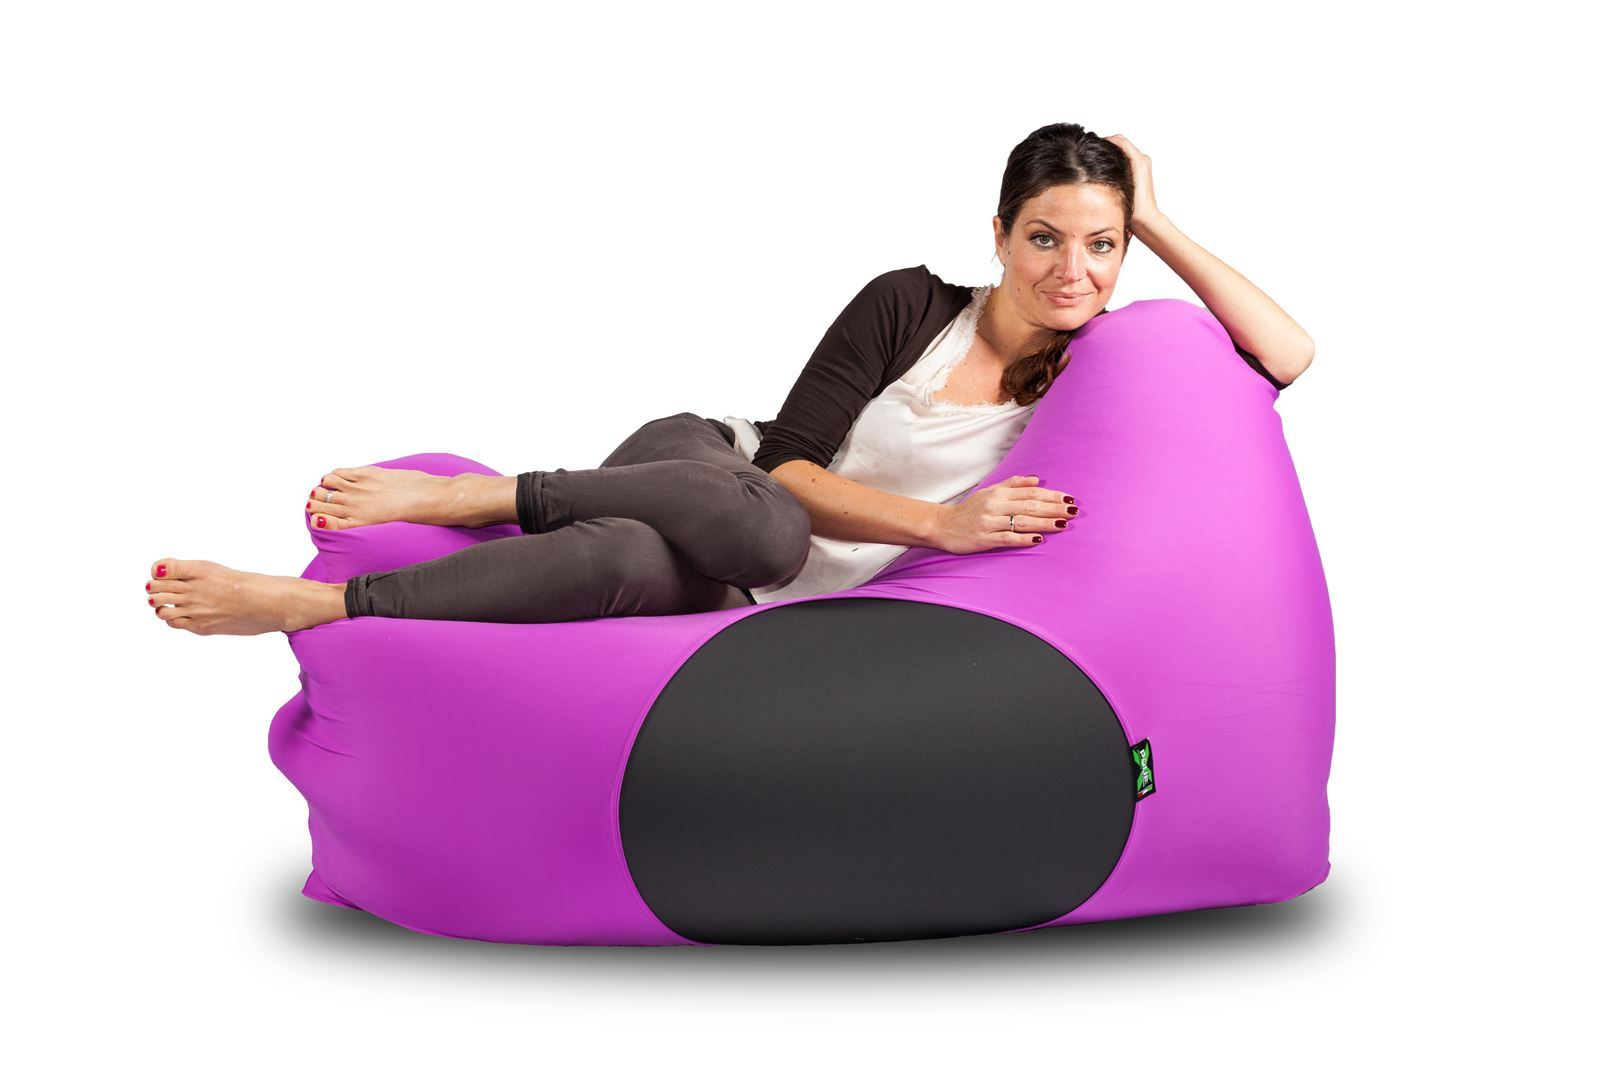 X-Pouf indoor